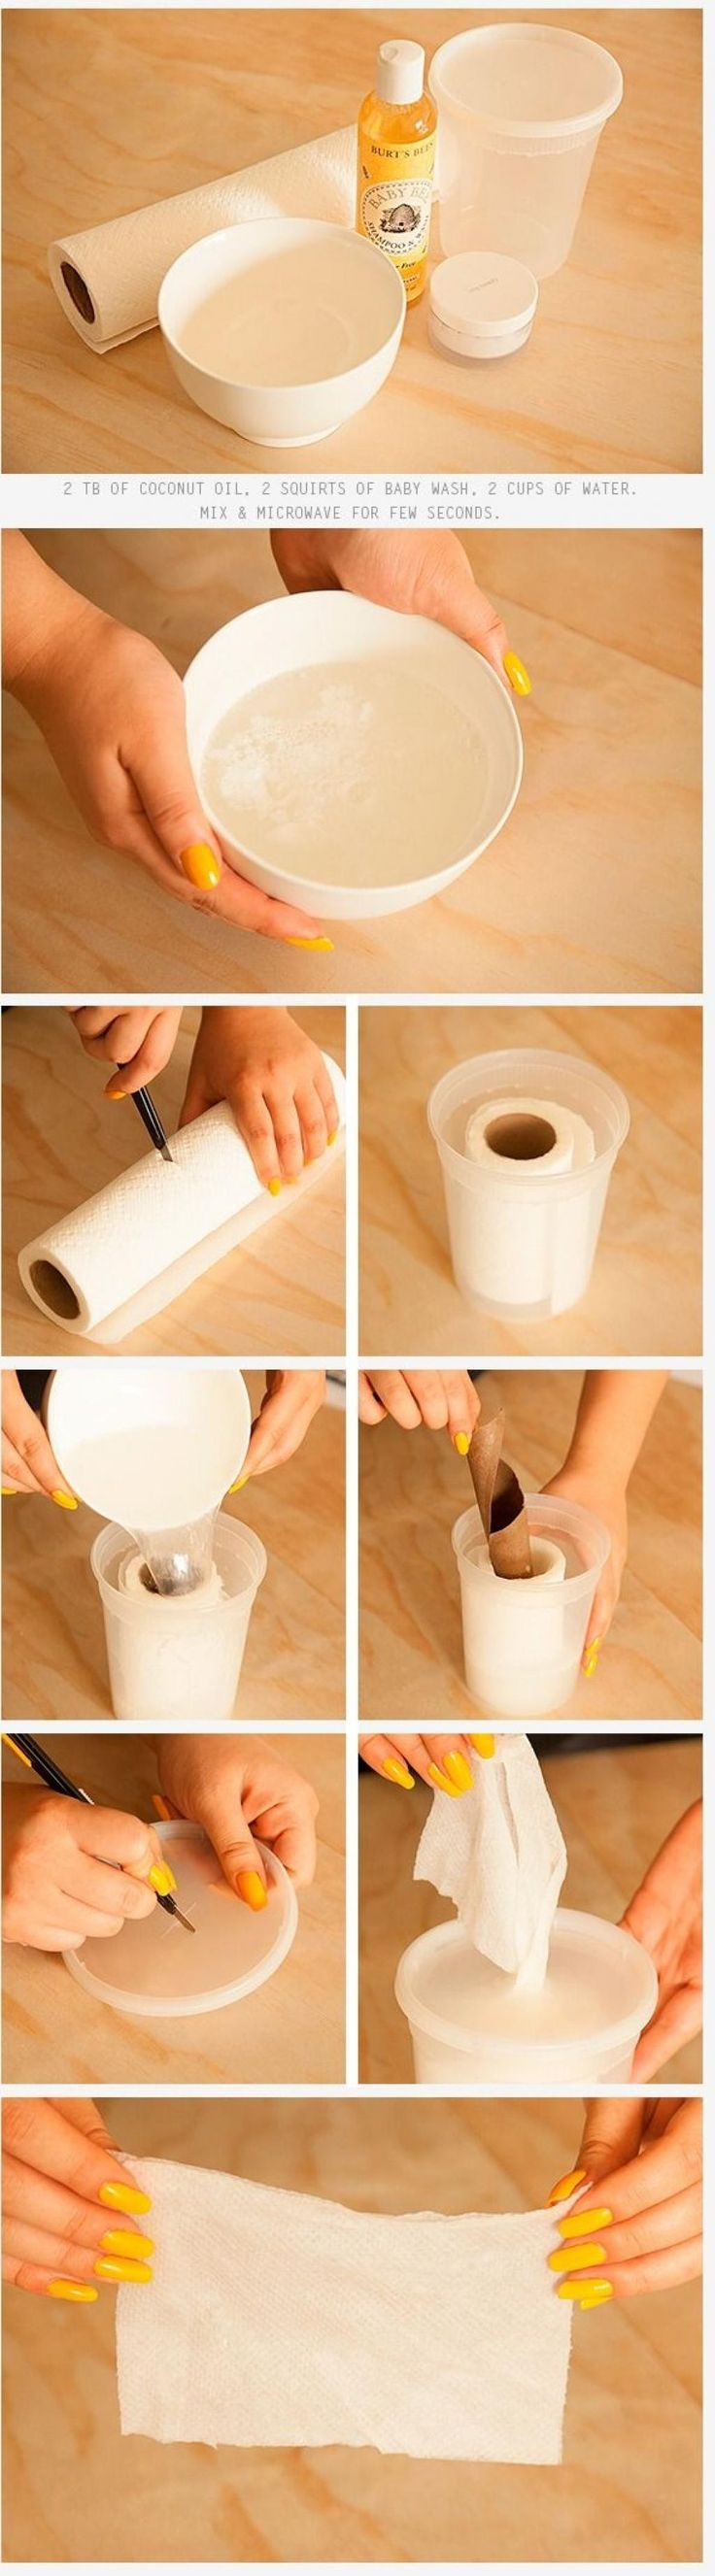 Here is just an tip to make a roll baby wipes. Ingredients: 2 TB Baby wash squirts 2 TB Coconut oil 2 Cups of water